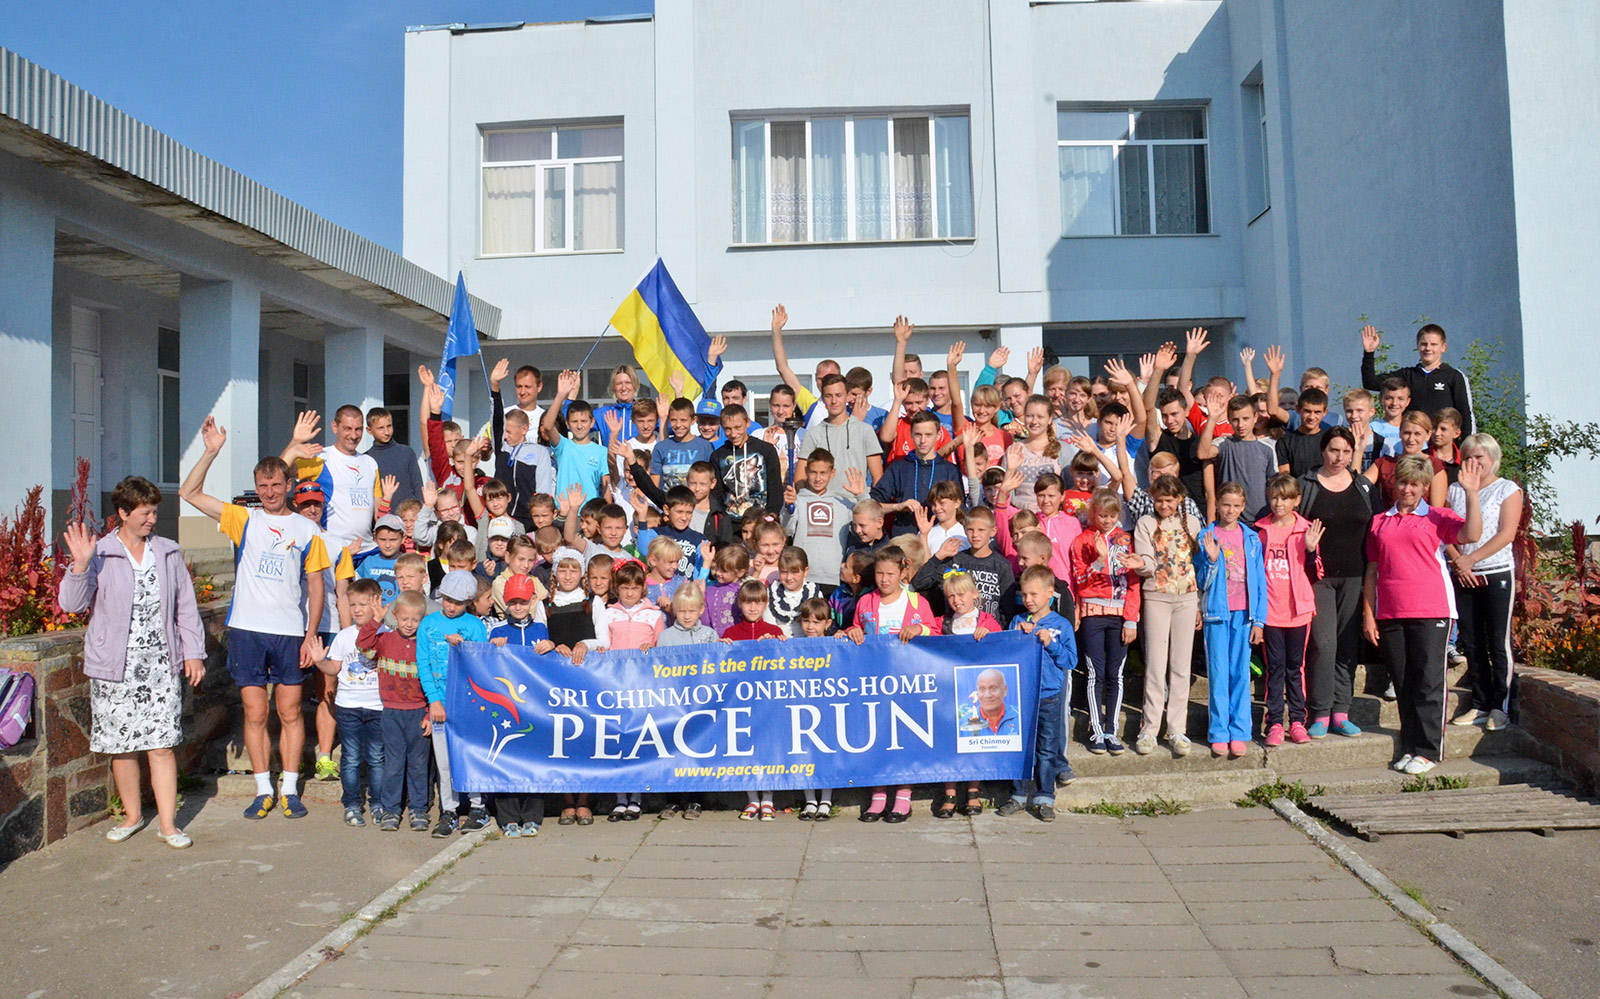 ukraine-peace-run-group